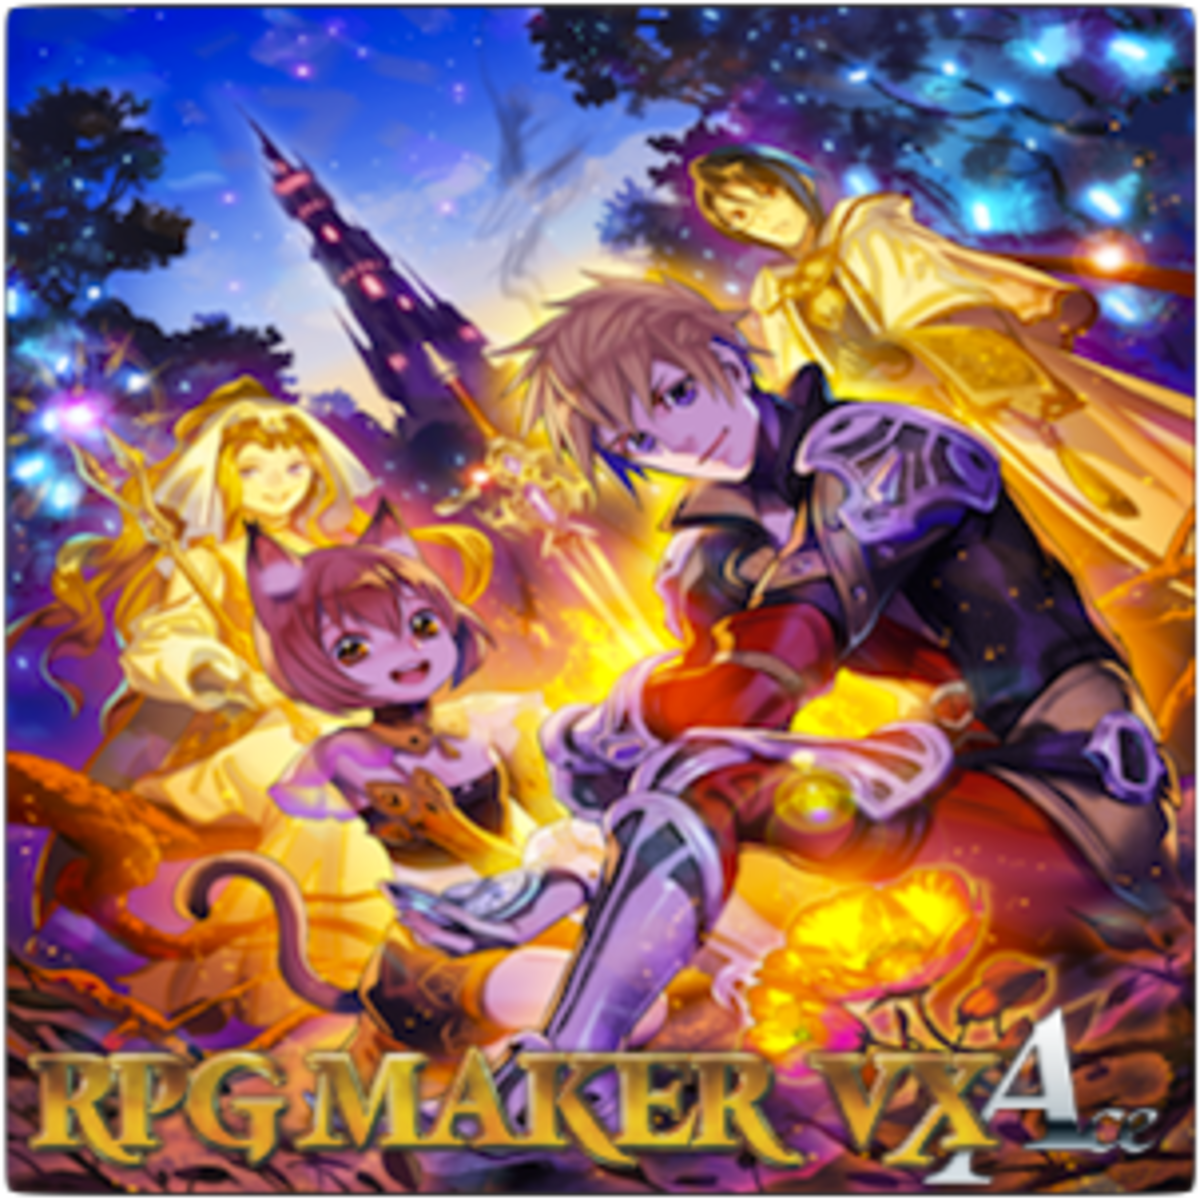 The cover art for the box copy of RPG Maker VX Ace.